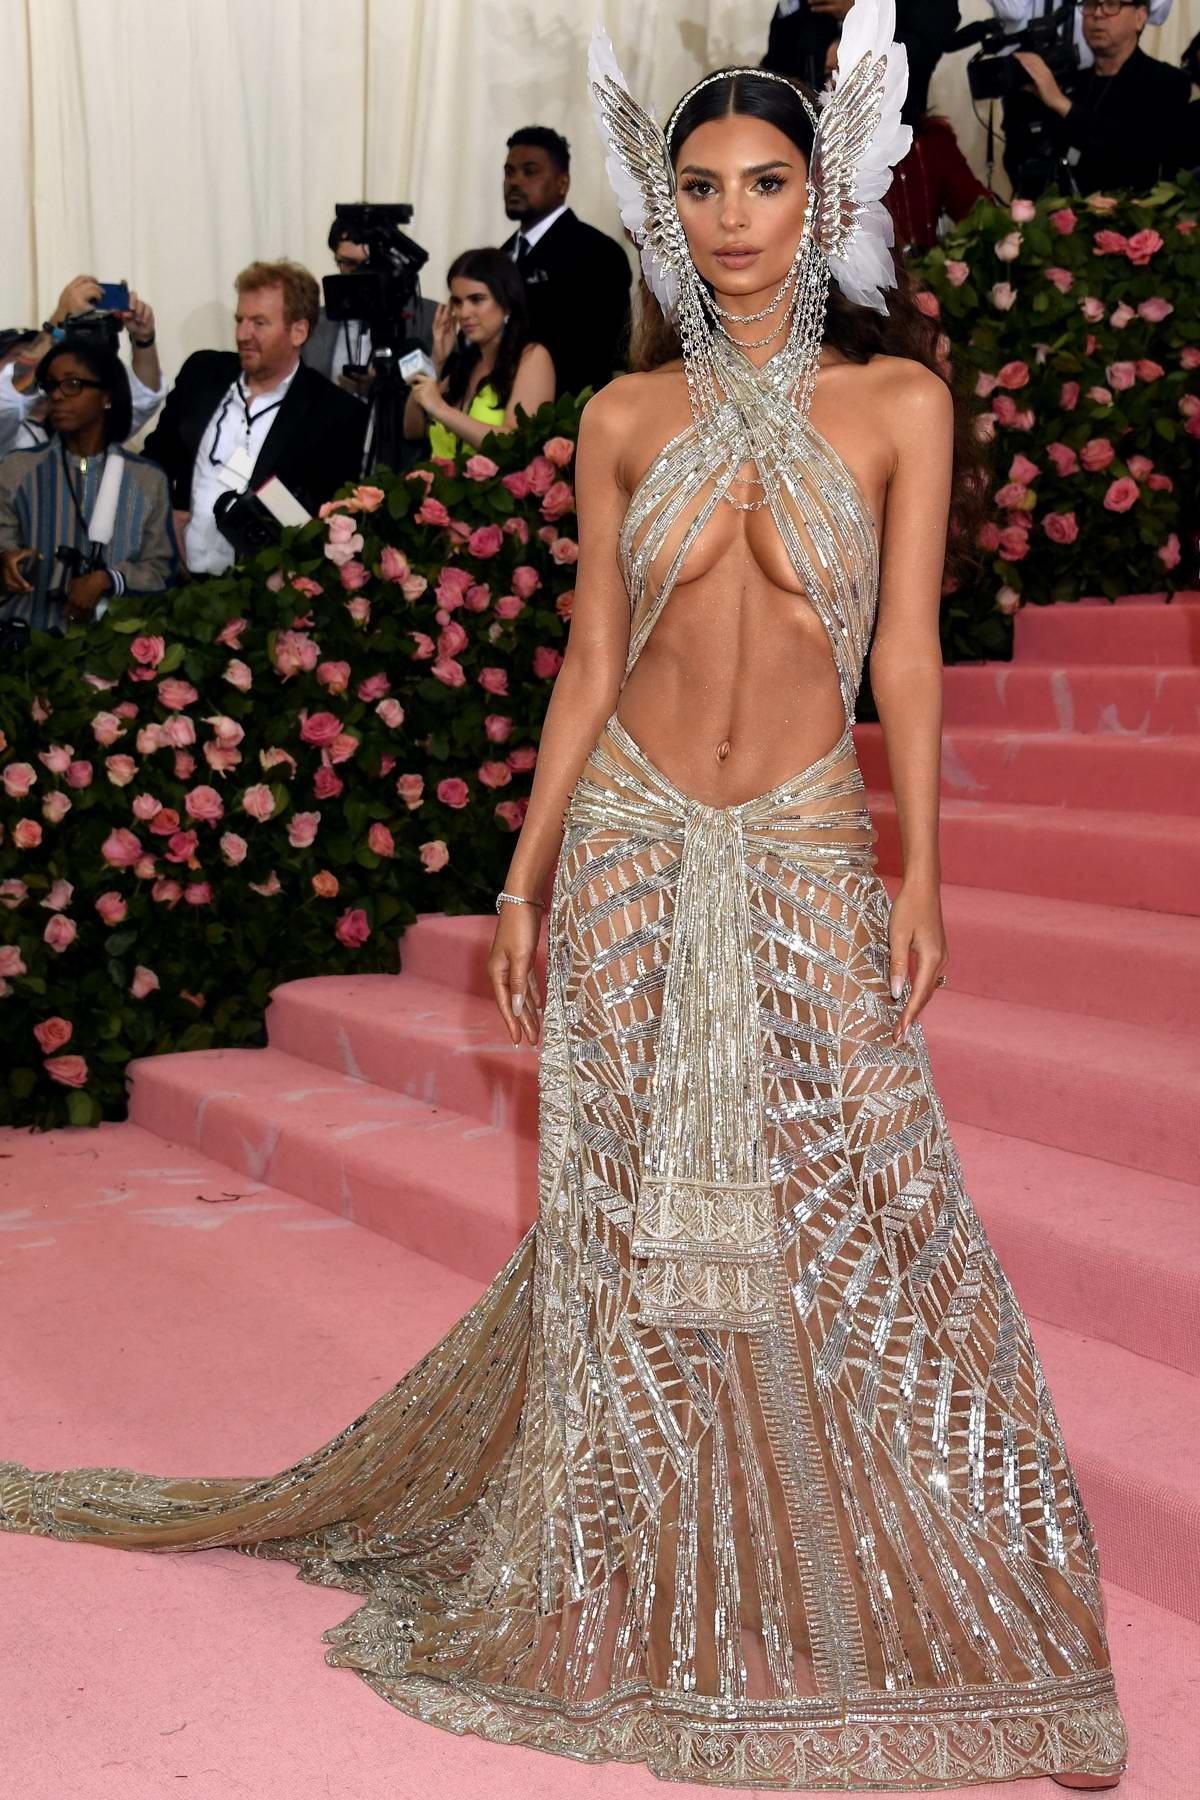 emily-ratajkowski-attends-the-2019-met-gala-celebrating-camp-notes-on-fashion-in-new-york-city-060519_12.jpg